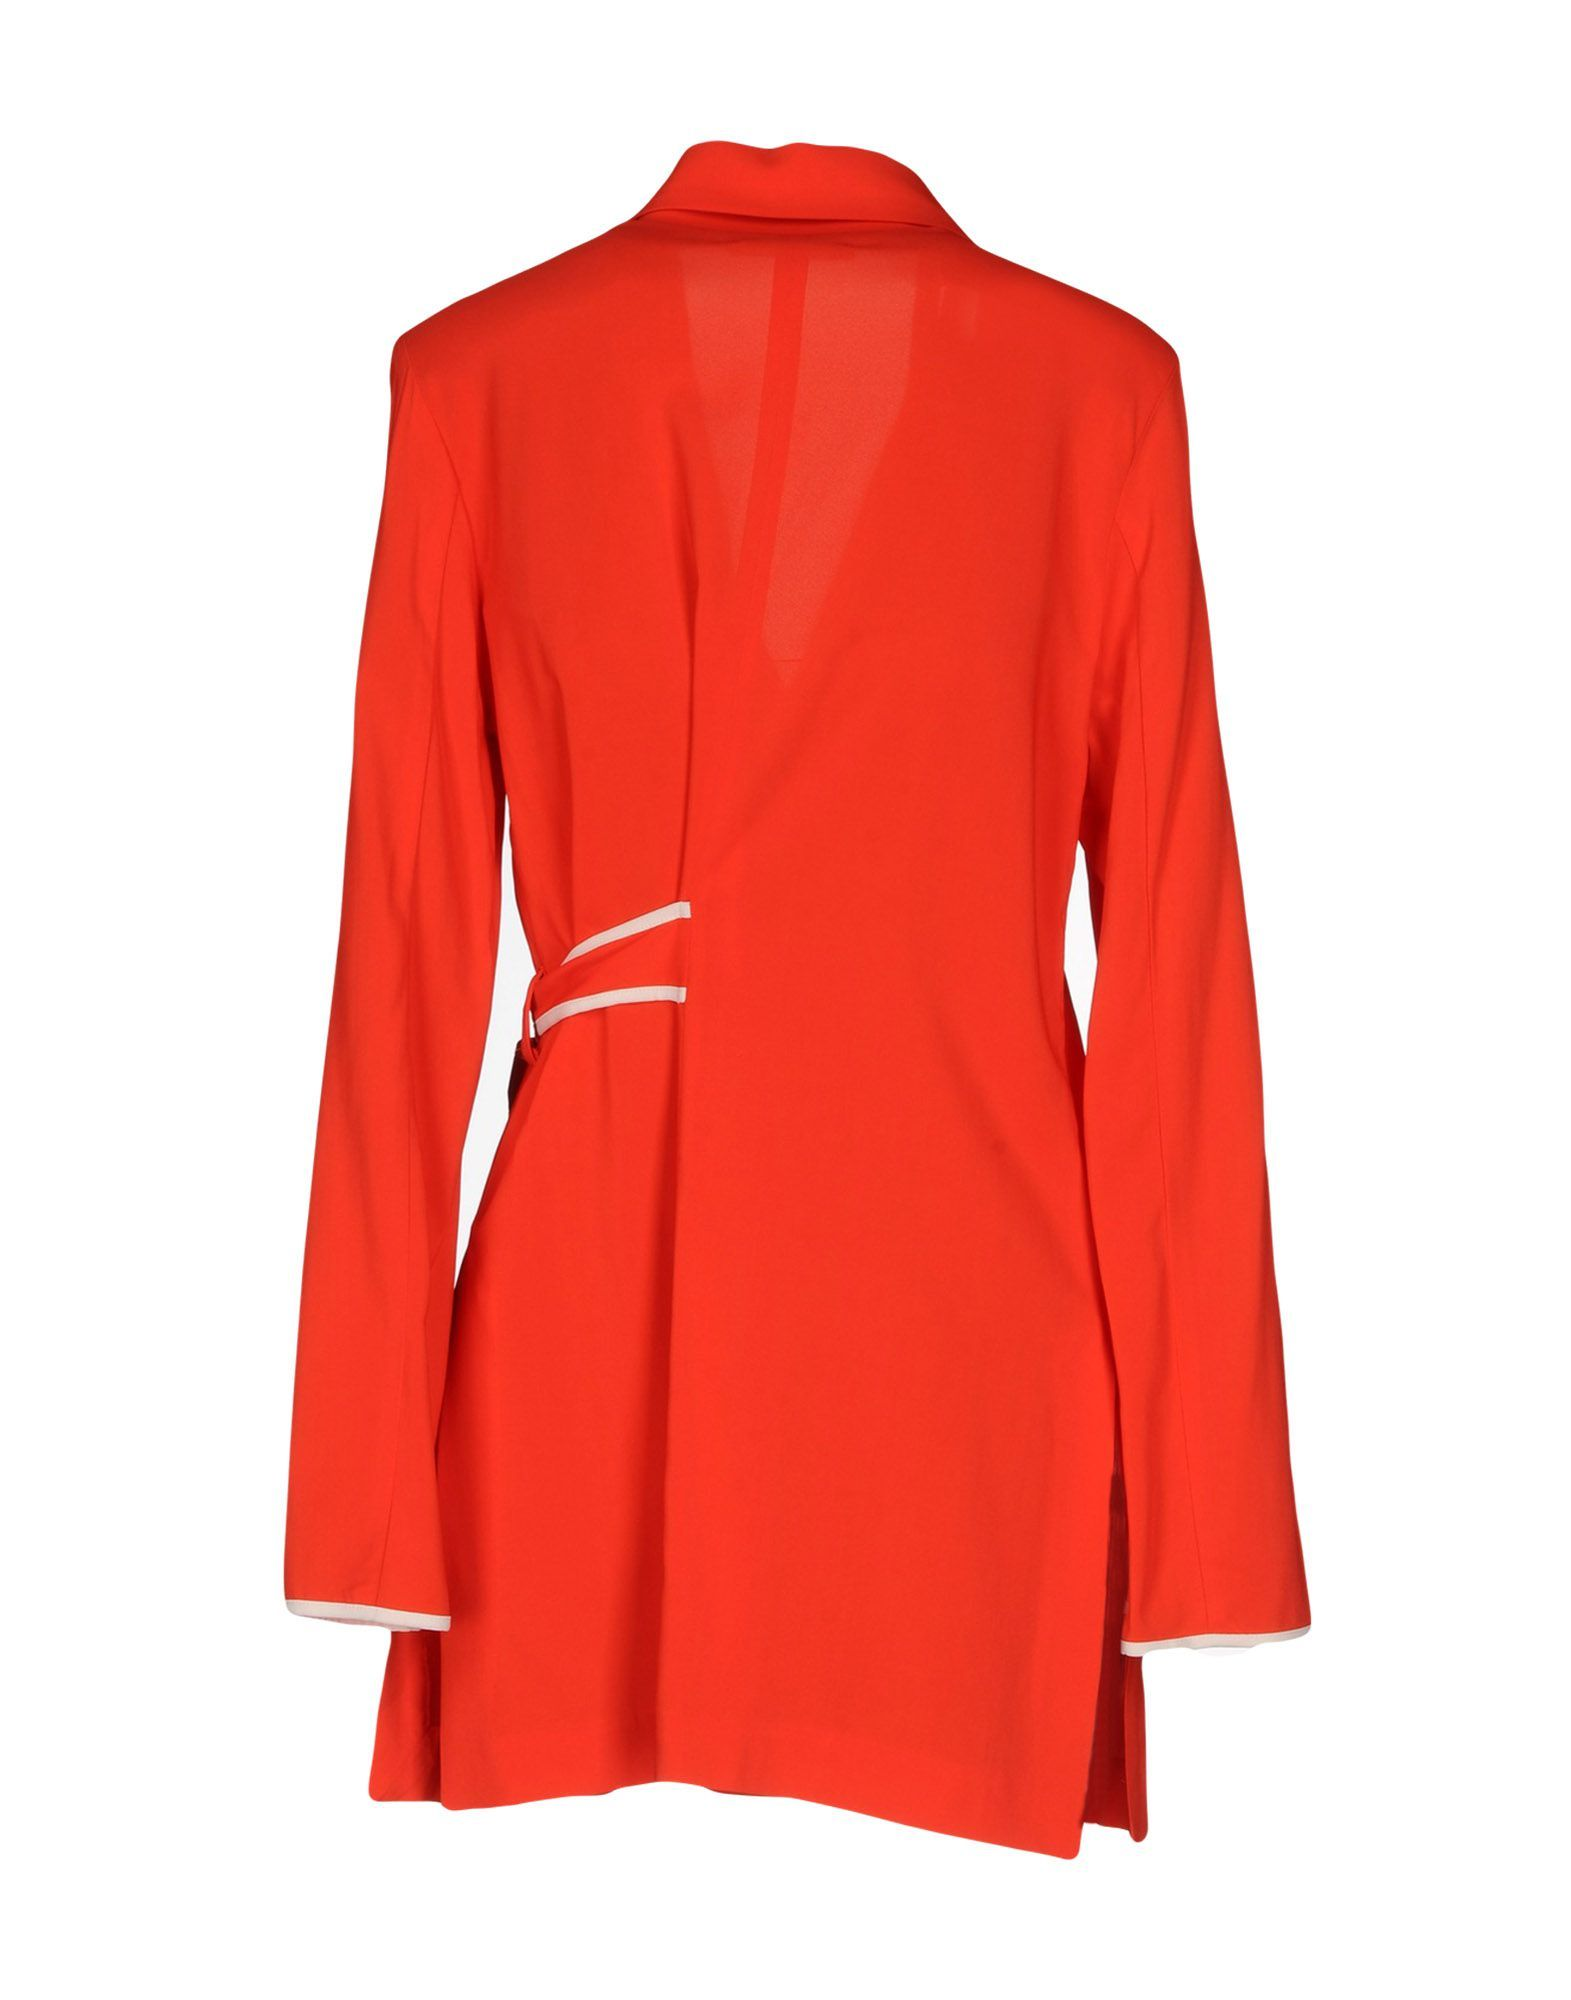 SUITS AND JACKETS Suoli Red Woman Viscose